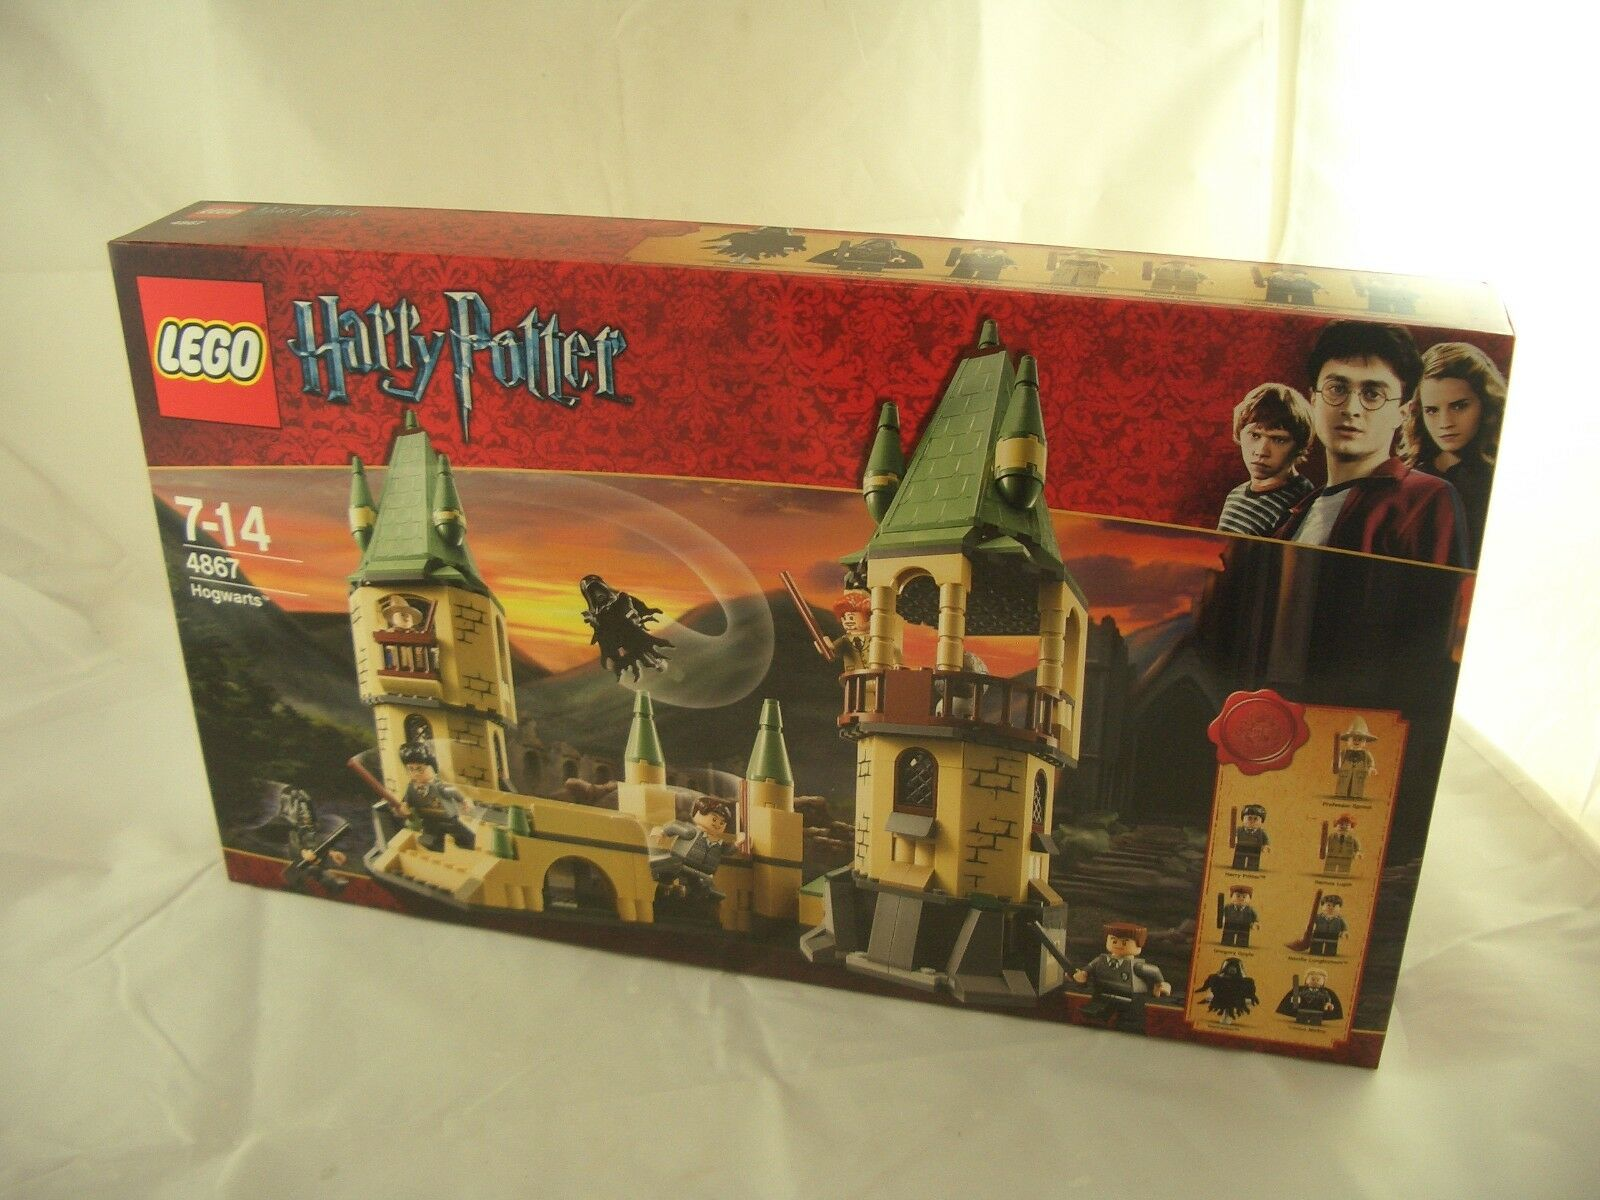 LEGO Harry Potter 4867 Hogwarts New Sealed